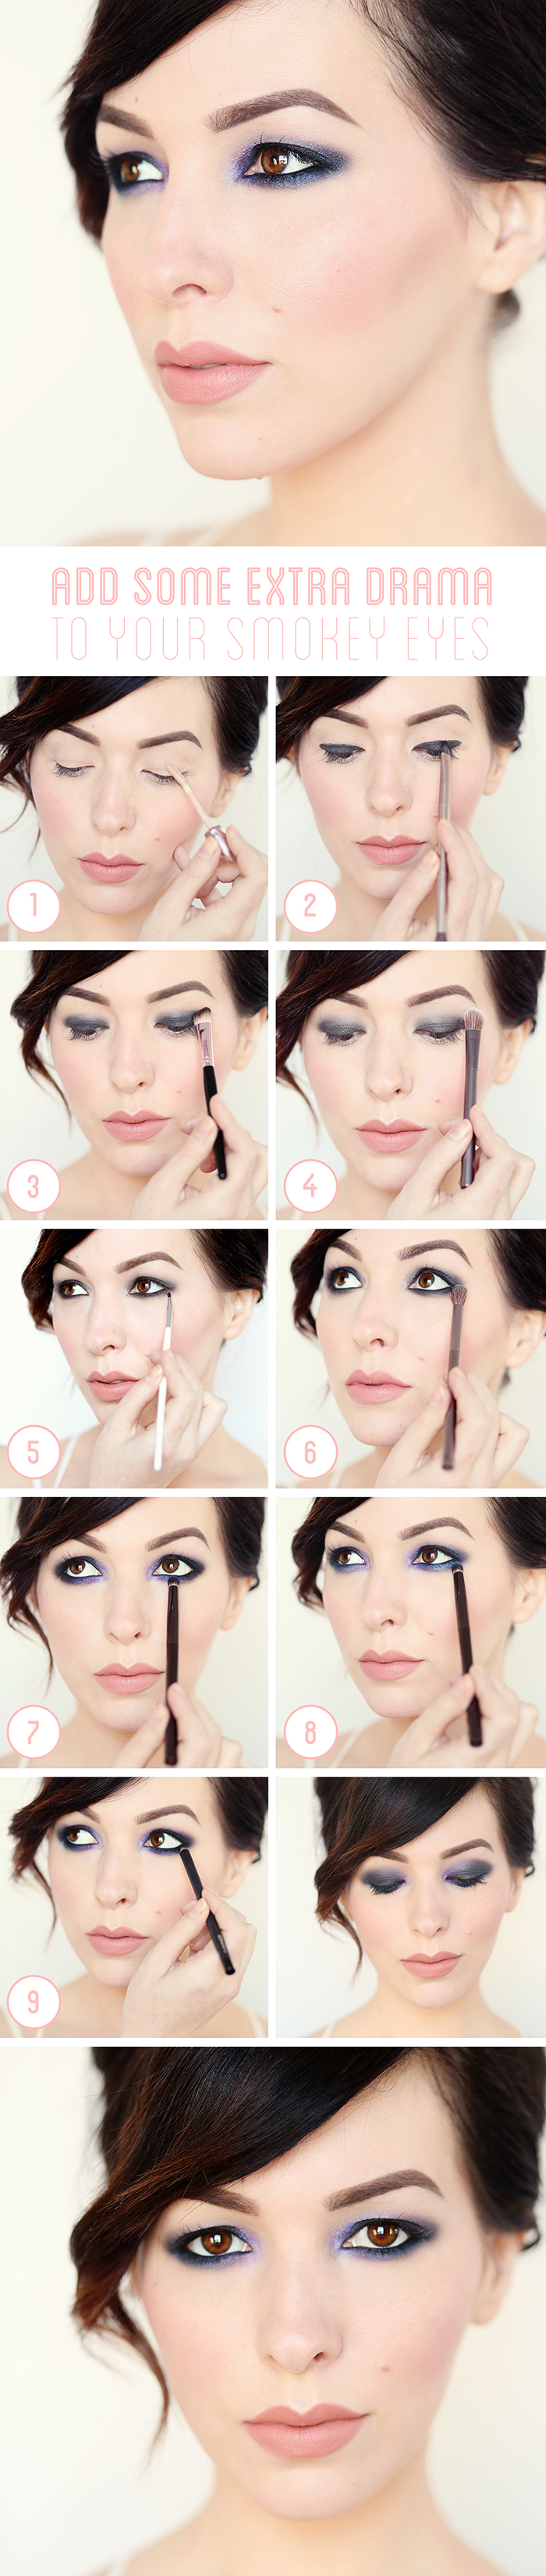 How To Dramatize Your Smokey Eyes